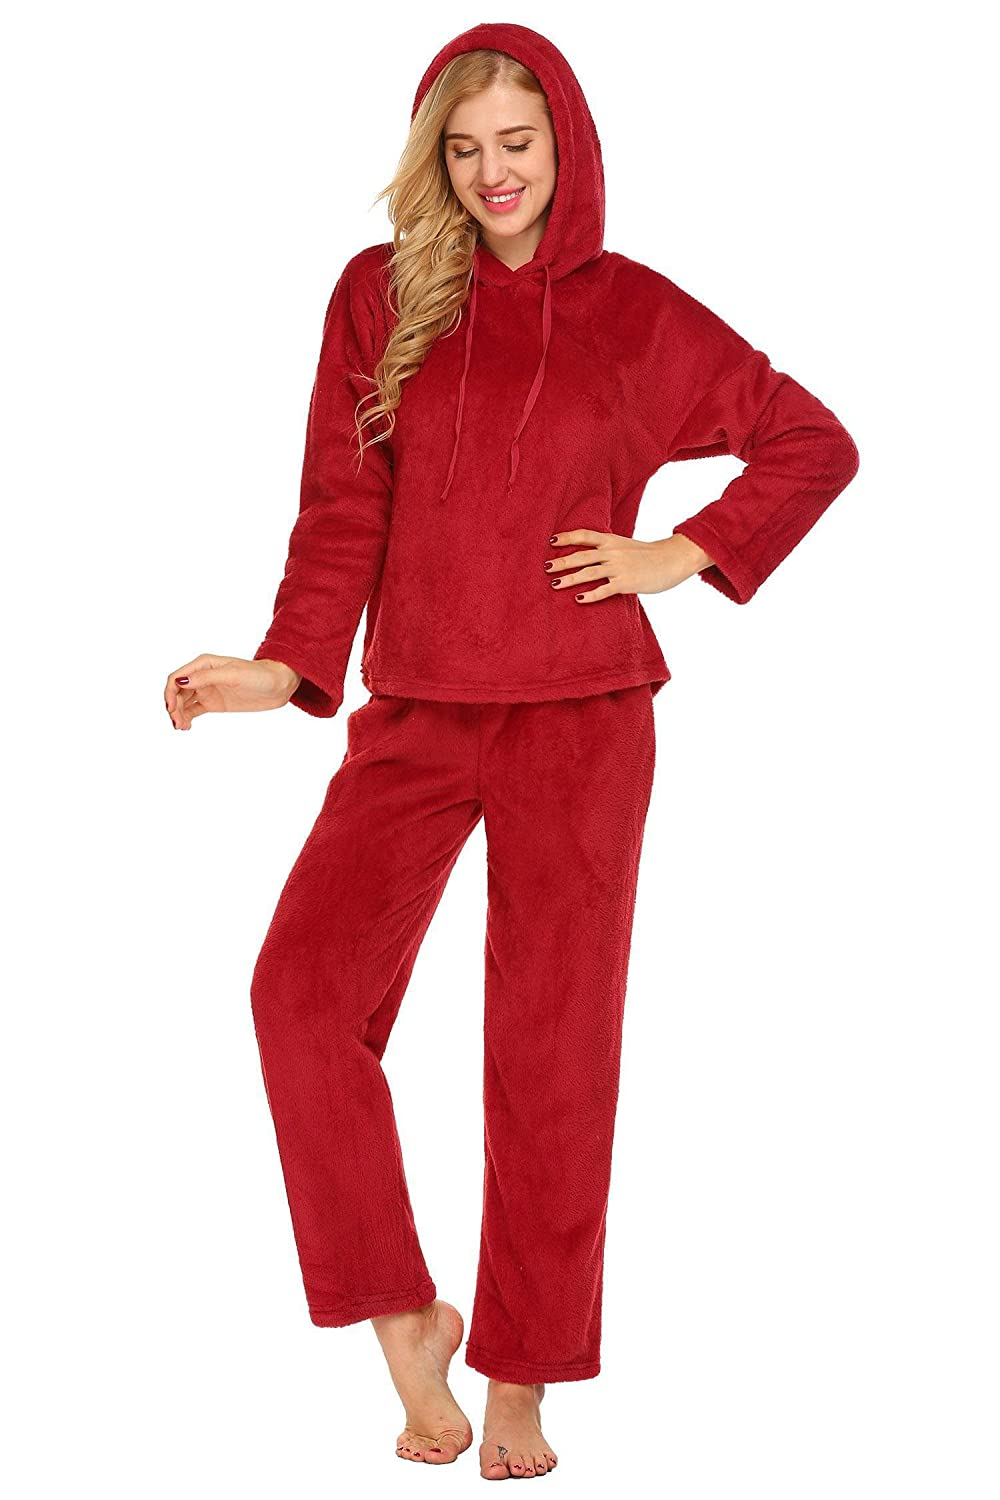 Dark Red Aimado Plush Robe Womens Fleece Spa Bathrobe Turtleneck Warm Nightgowns SXXL